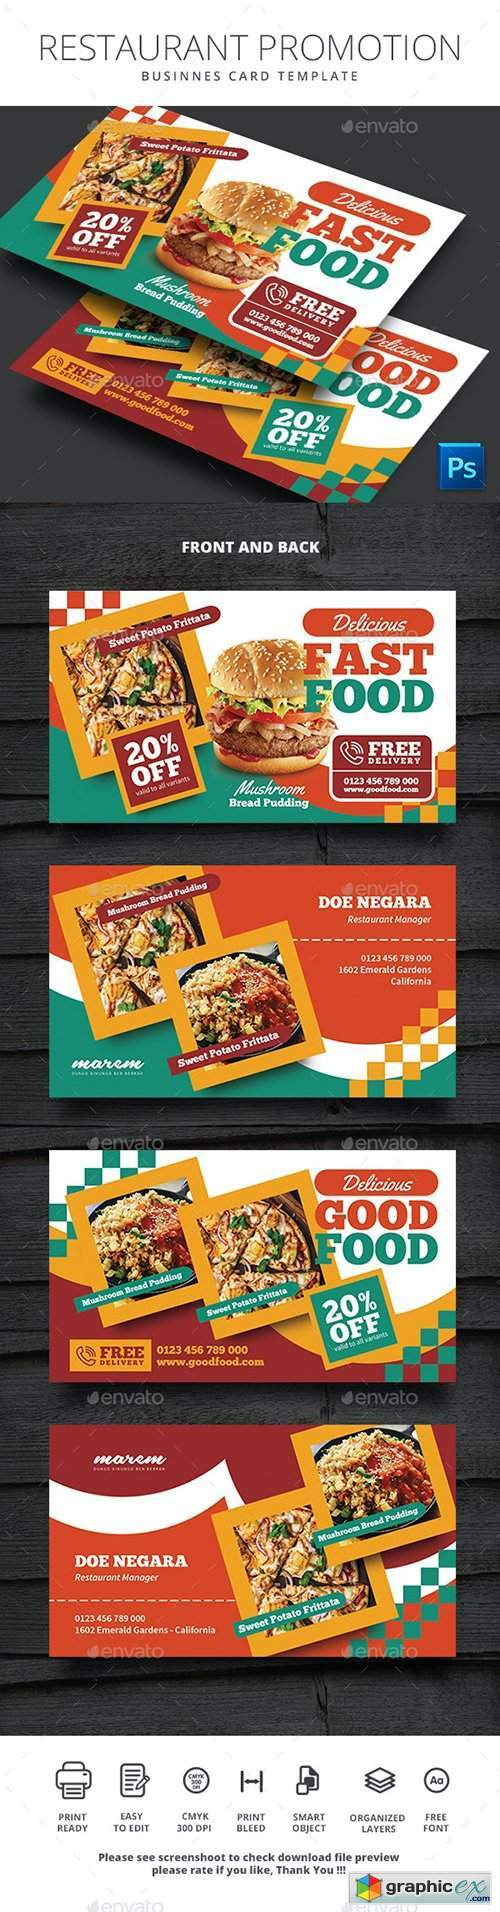 Restaurant Promotion Business Card